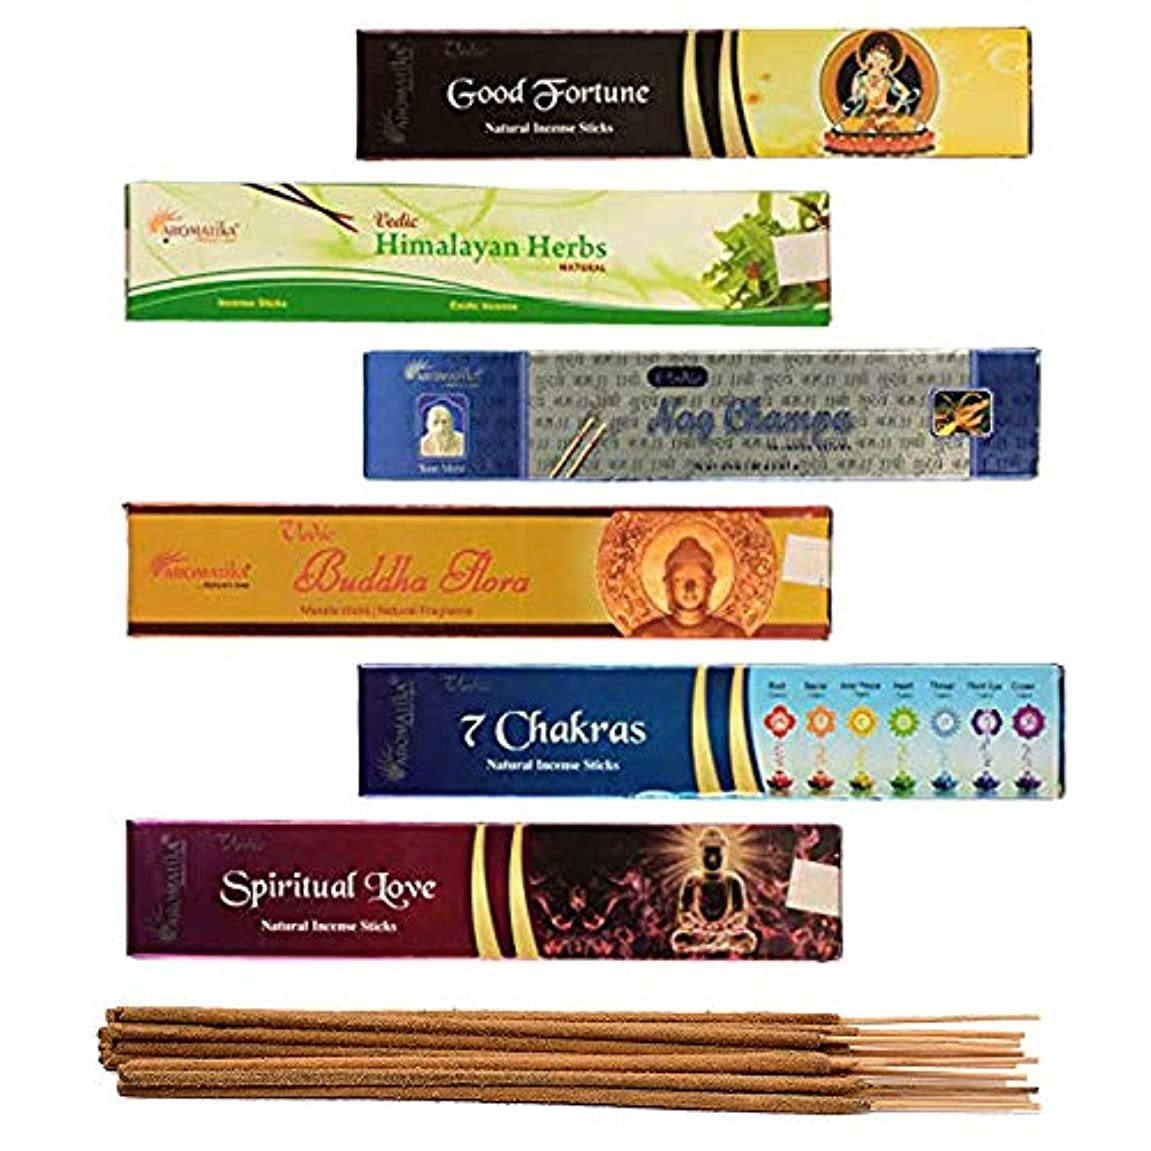 すすり泣き広いためにaromatika 6 Assorted Masala Incense Sticks Vedic Nag Champa、7チャクラ、ブッダFlora、Himalayanハーブ、Good Fortune、Spiritual...